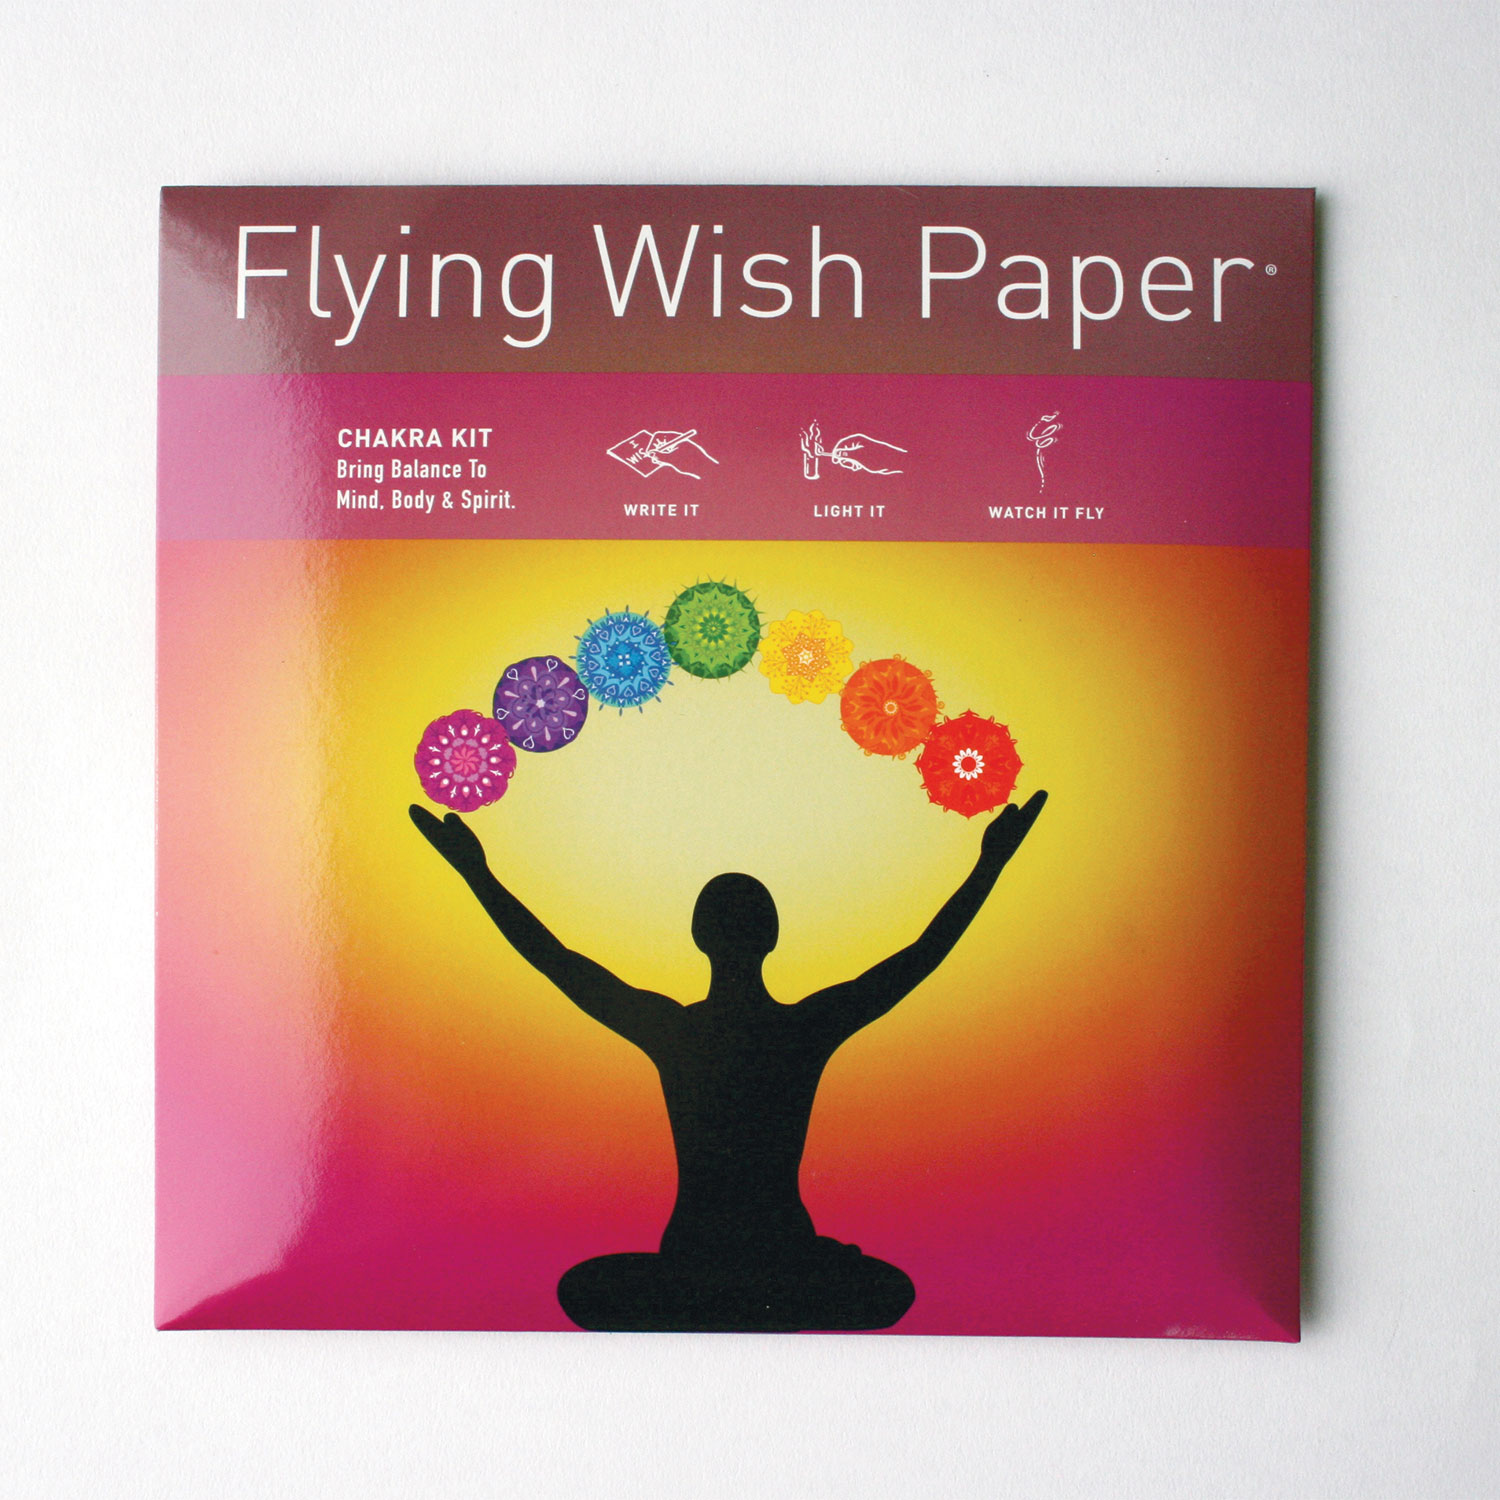 Flying Wish Paper Large Chakra Kit